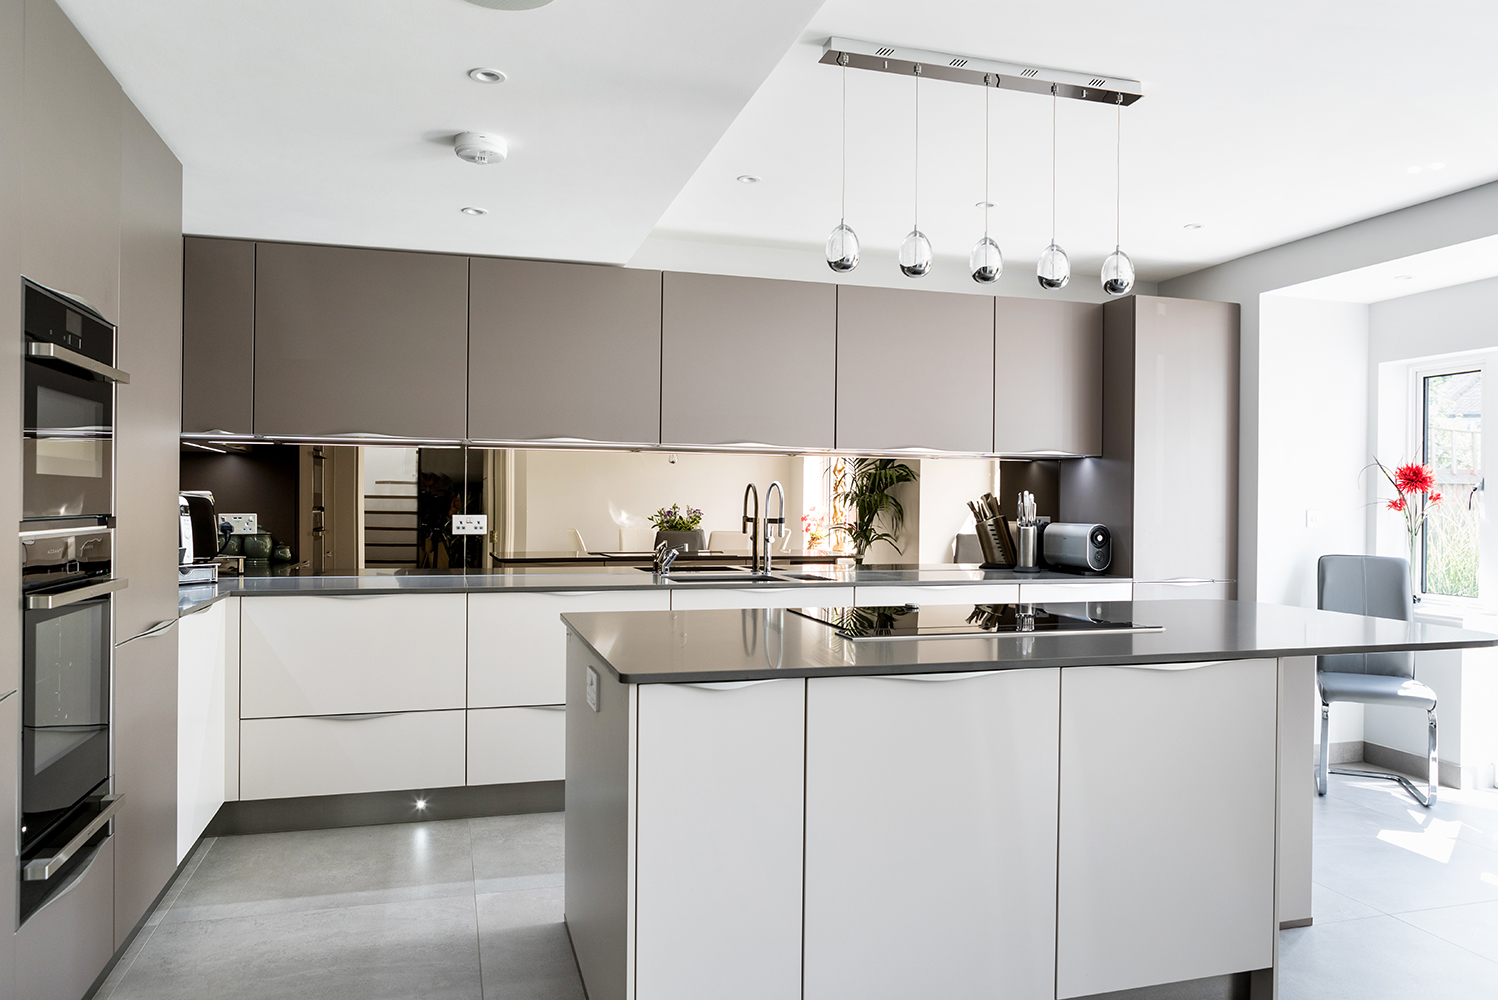 Dorable Monmouth Kitchens Mold - Kitchen Cabinets | Ideas ...